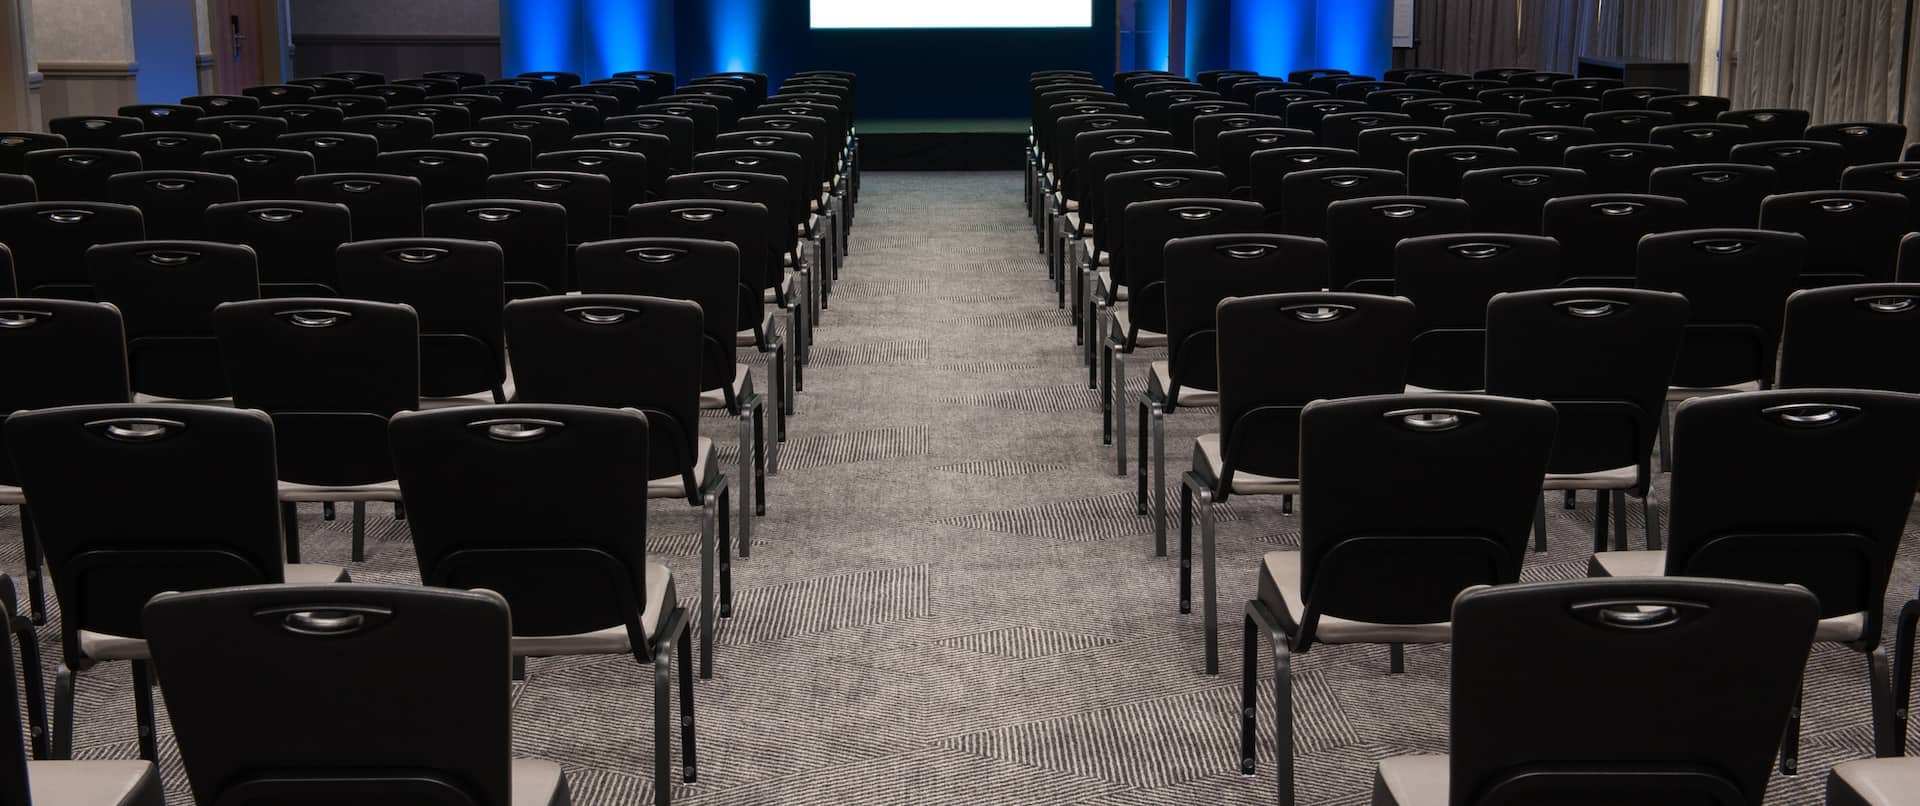 Edinburgh Suite Arranged Theater Style With Rows of Black Chairs Facing Dramatically Lit Projector Screen and Podium